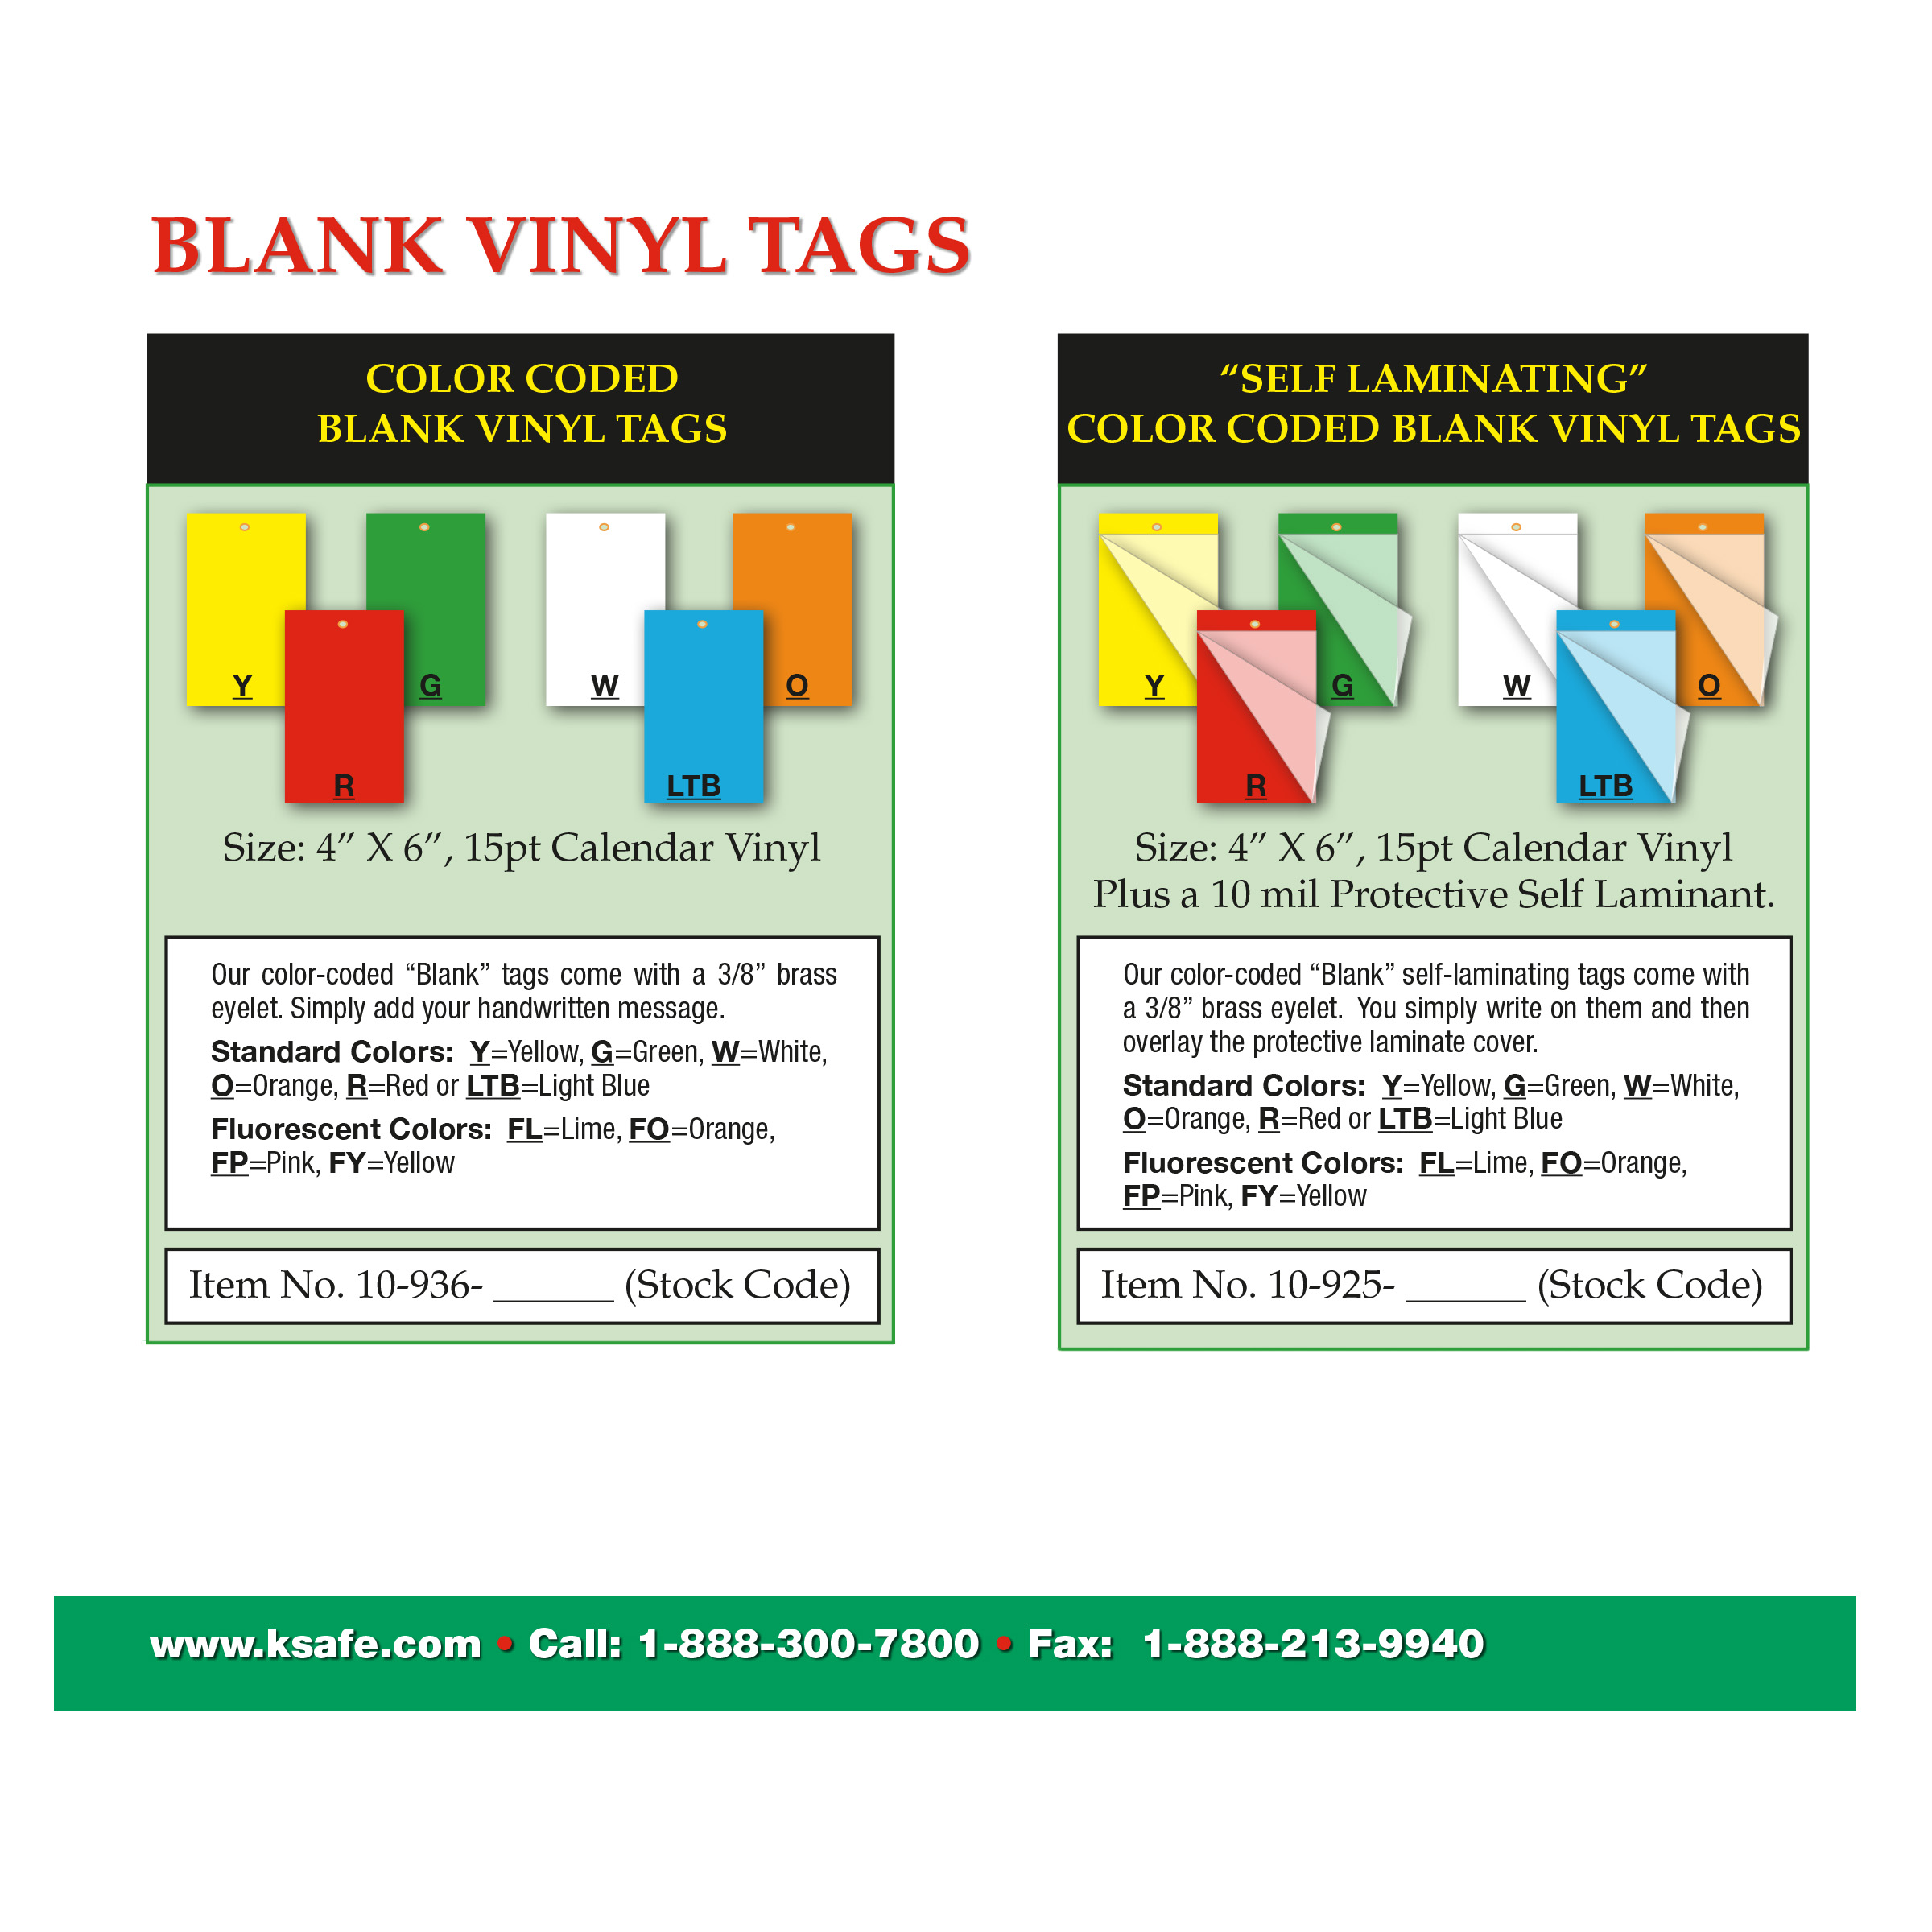 Color Coded Blank Vinyl Tags